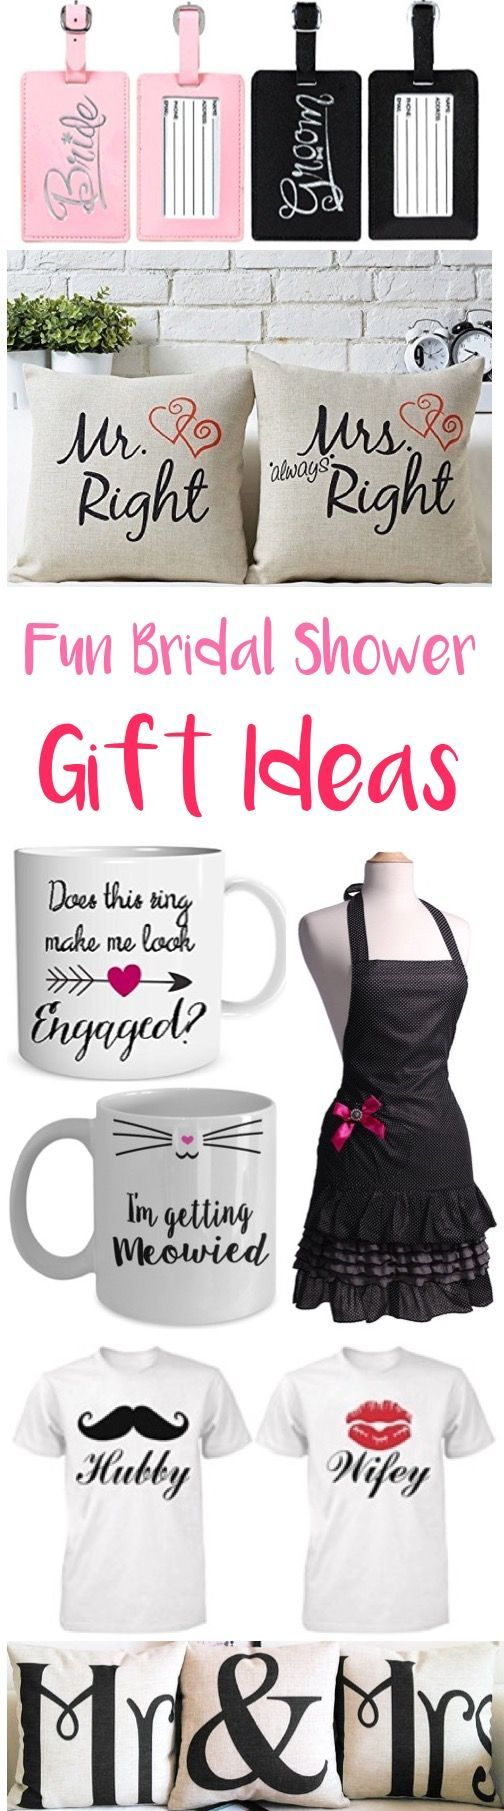 craft ideas homemade bridal shower decoration%0A    Bridal Shower Gifts for the Bride to Be  So many fun gift ideas she